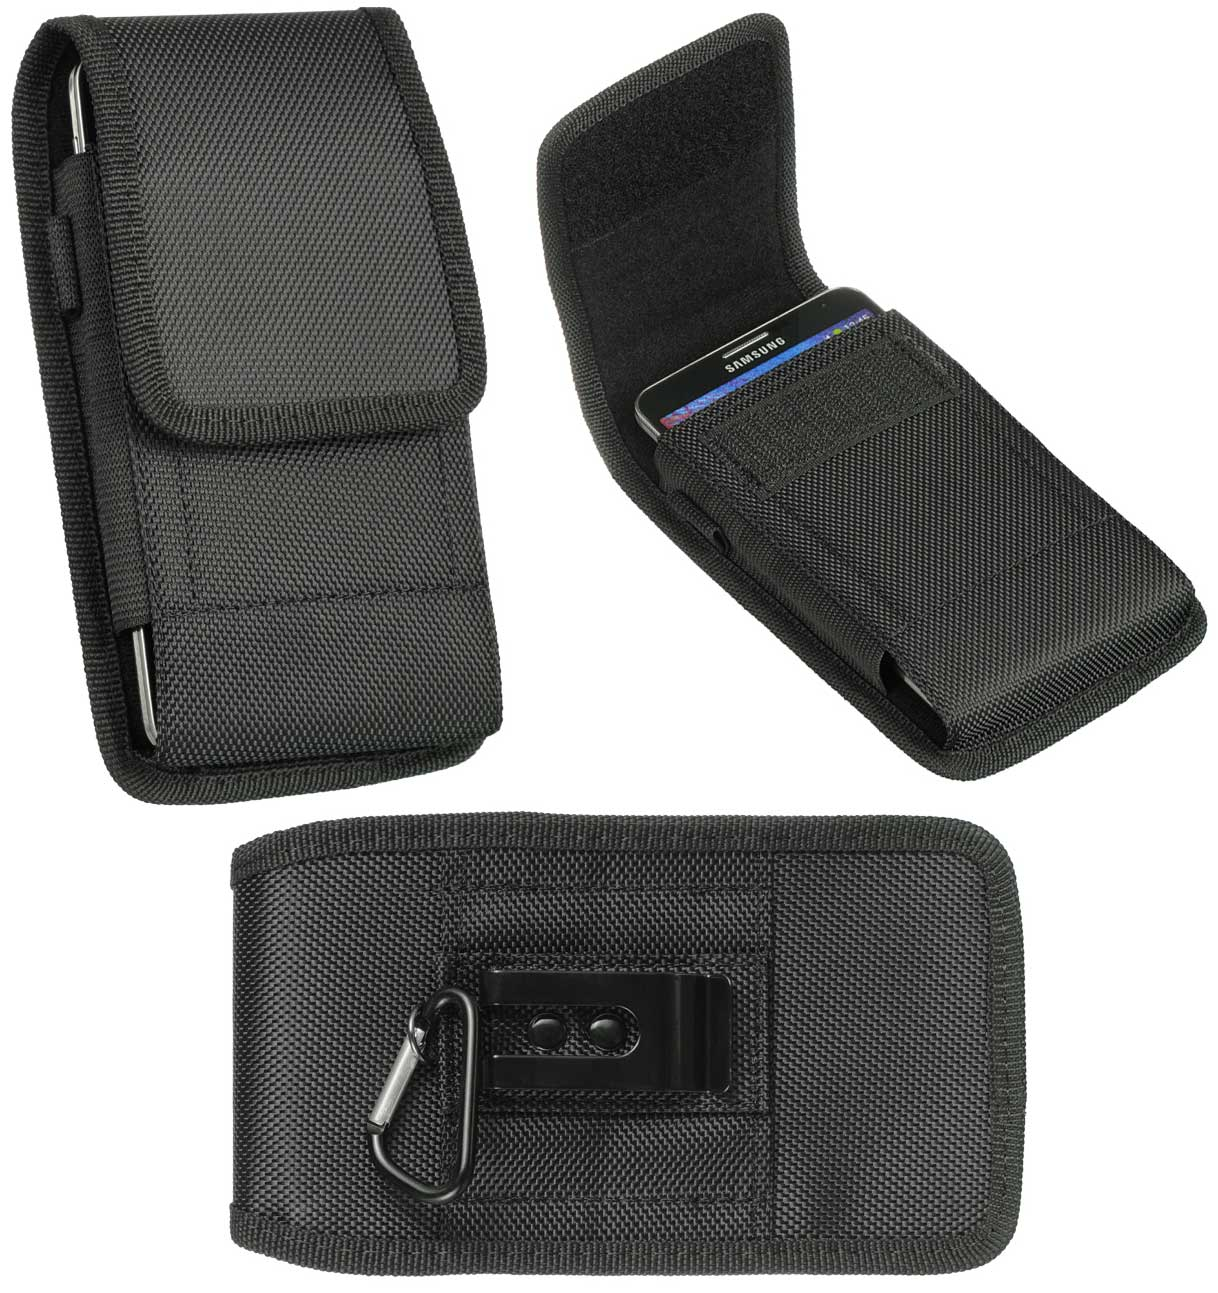 Neoprene Nylon Case Pouch Clip Hook Black